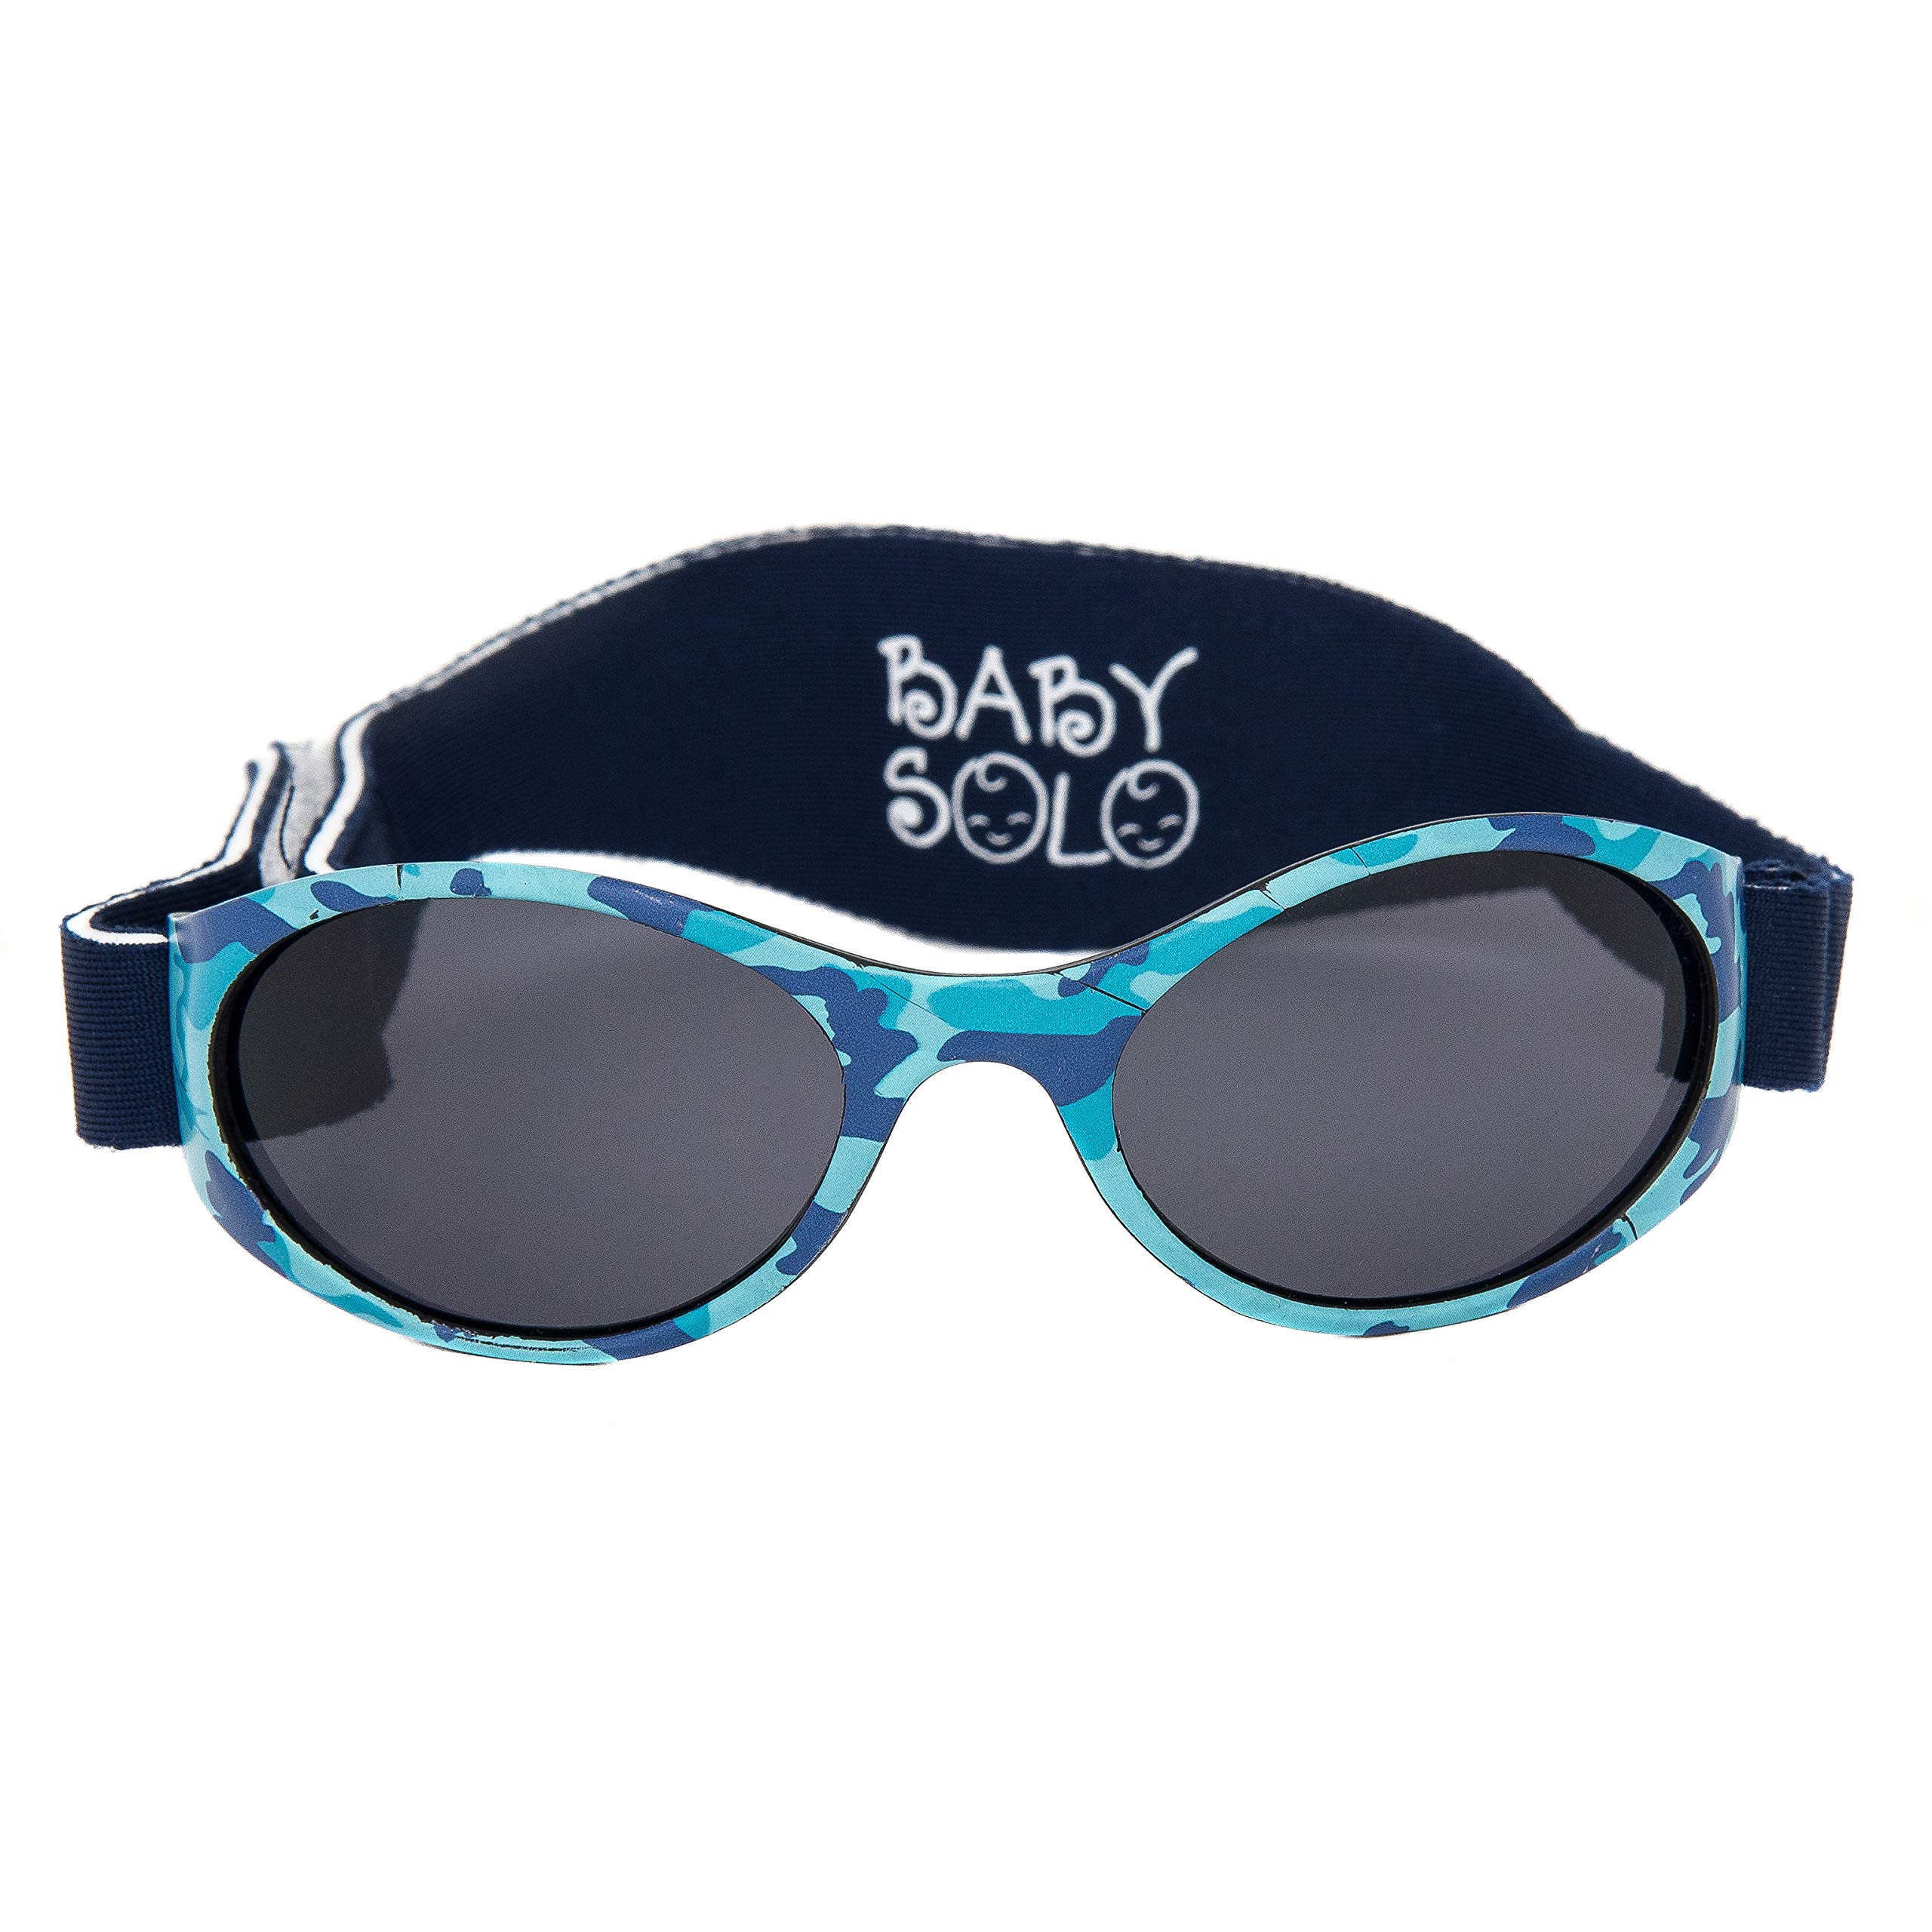 Baby Solo Original Baby Sunglasses Safe, Soft, Adorable Durable Case Included (0-36 Months, Matte Blue Camo Frame w/Solid Black Lens)